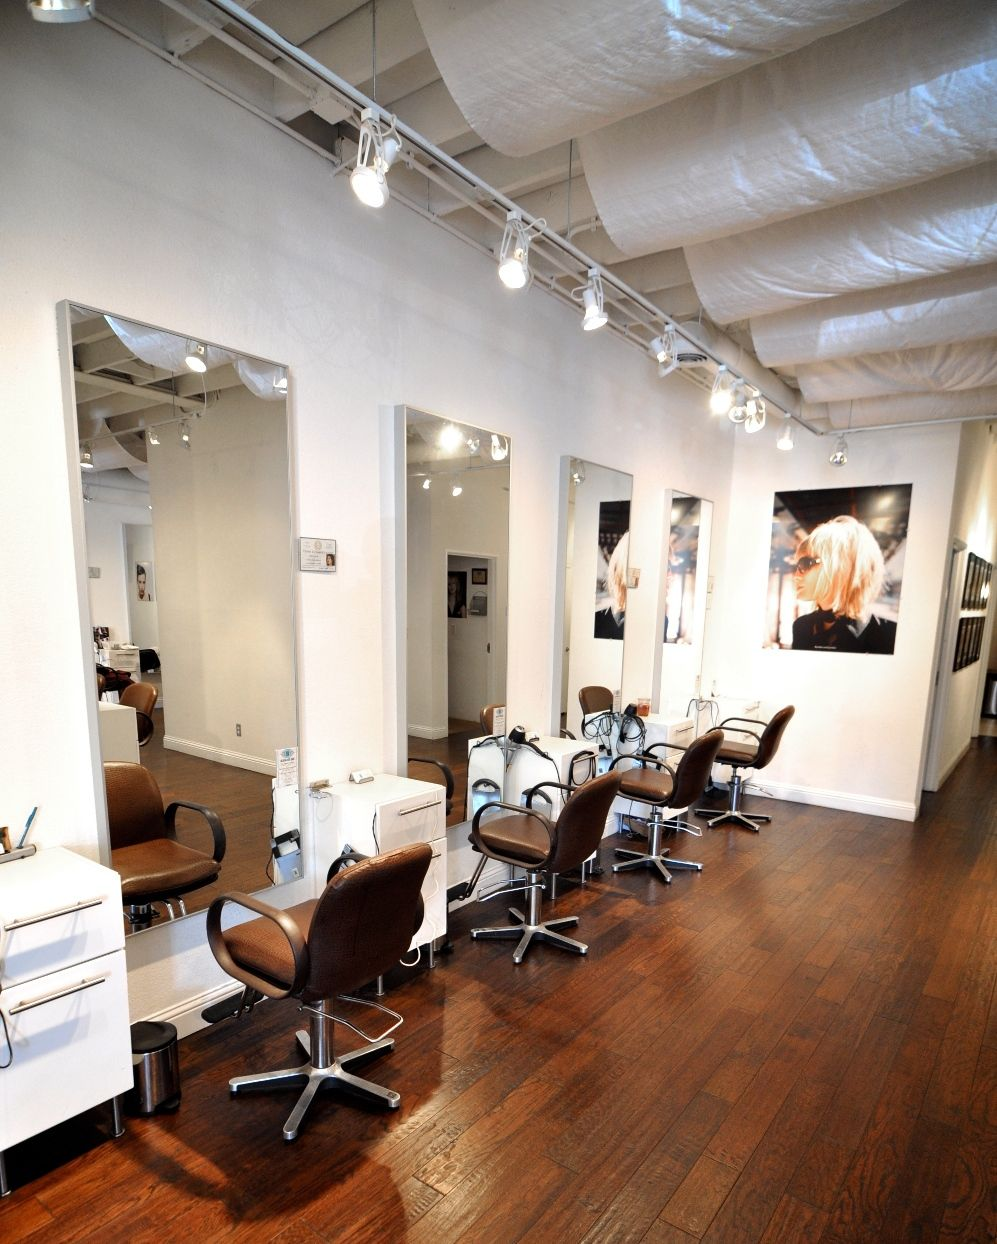 hair salon 4ps Gatsby hair & beauty is situated in the heart of watford, near watford junction gatsby is a family feel happy salon that welcomes all ladies, gents & children.